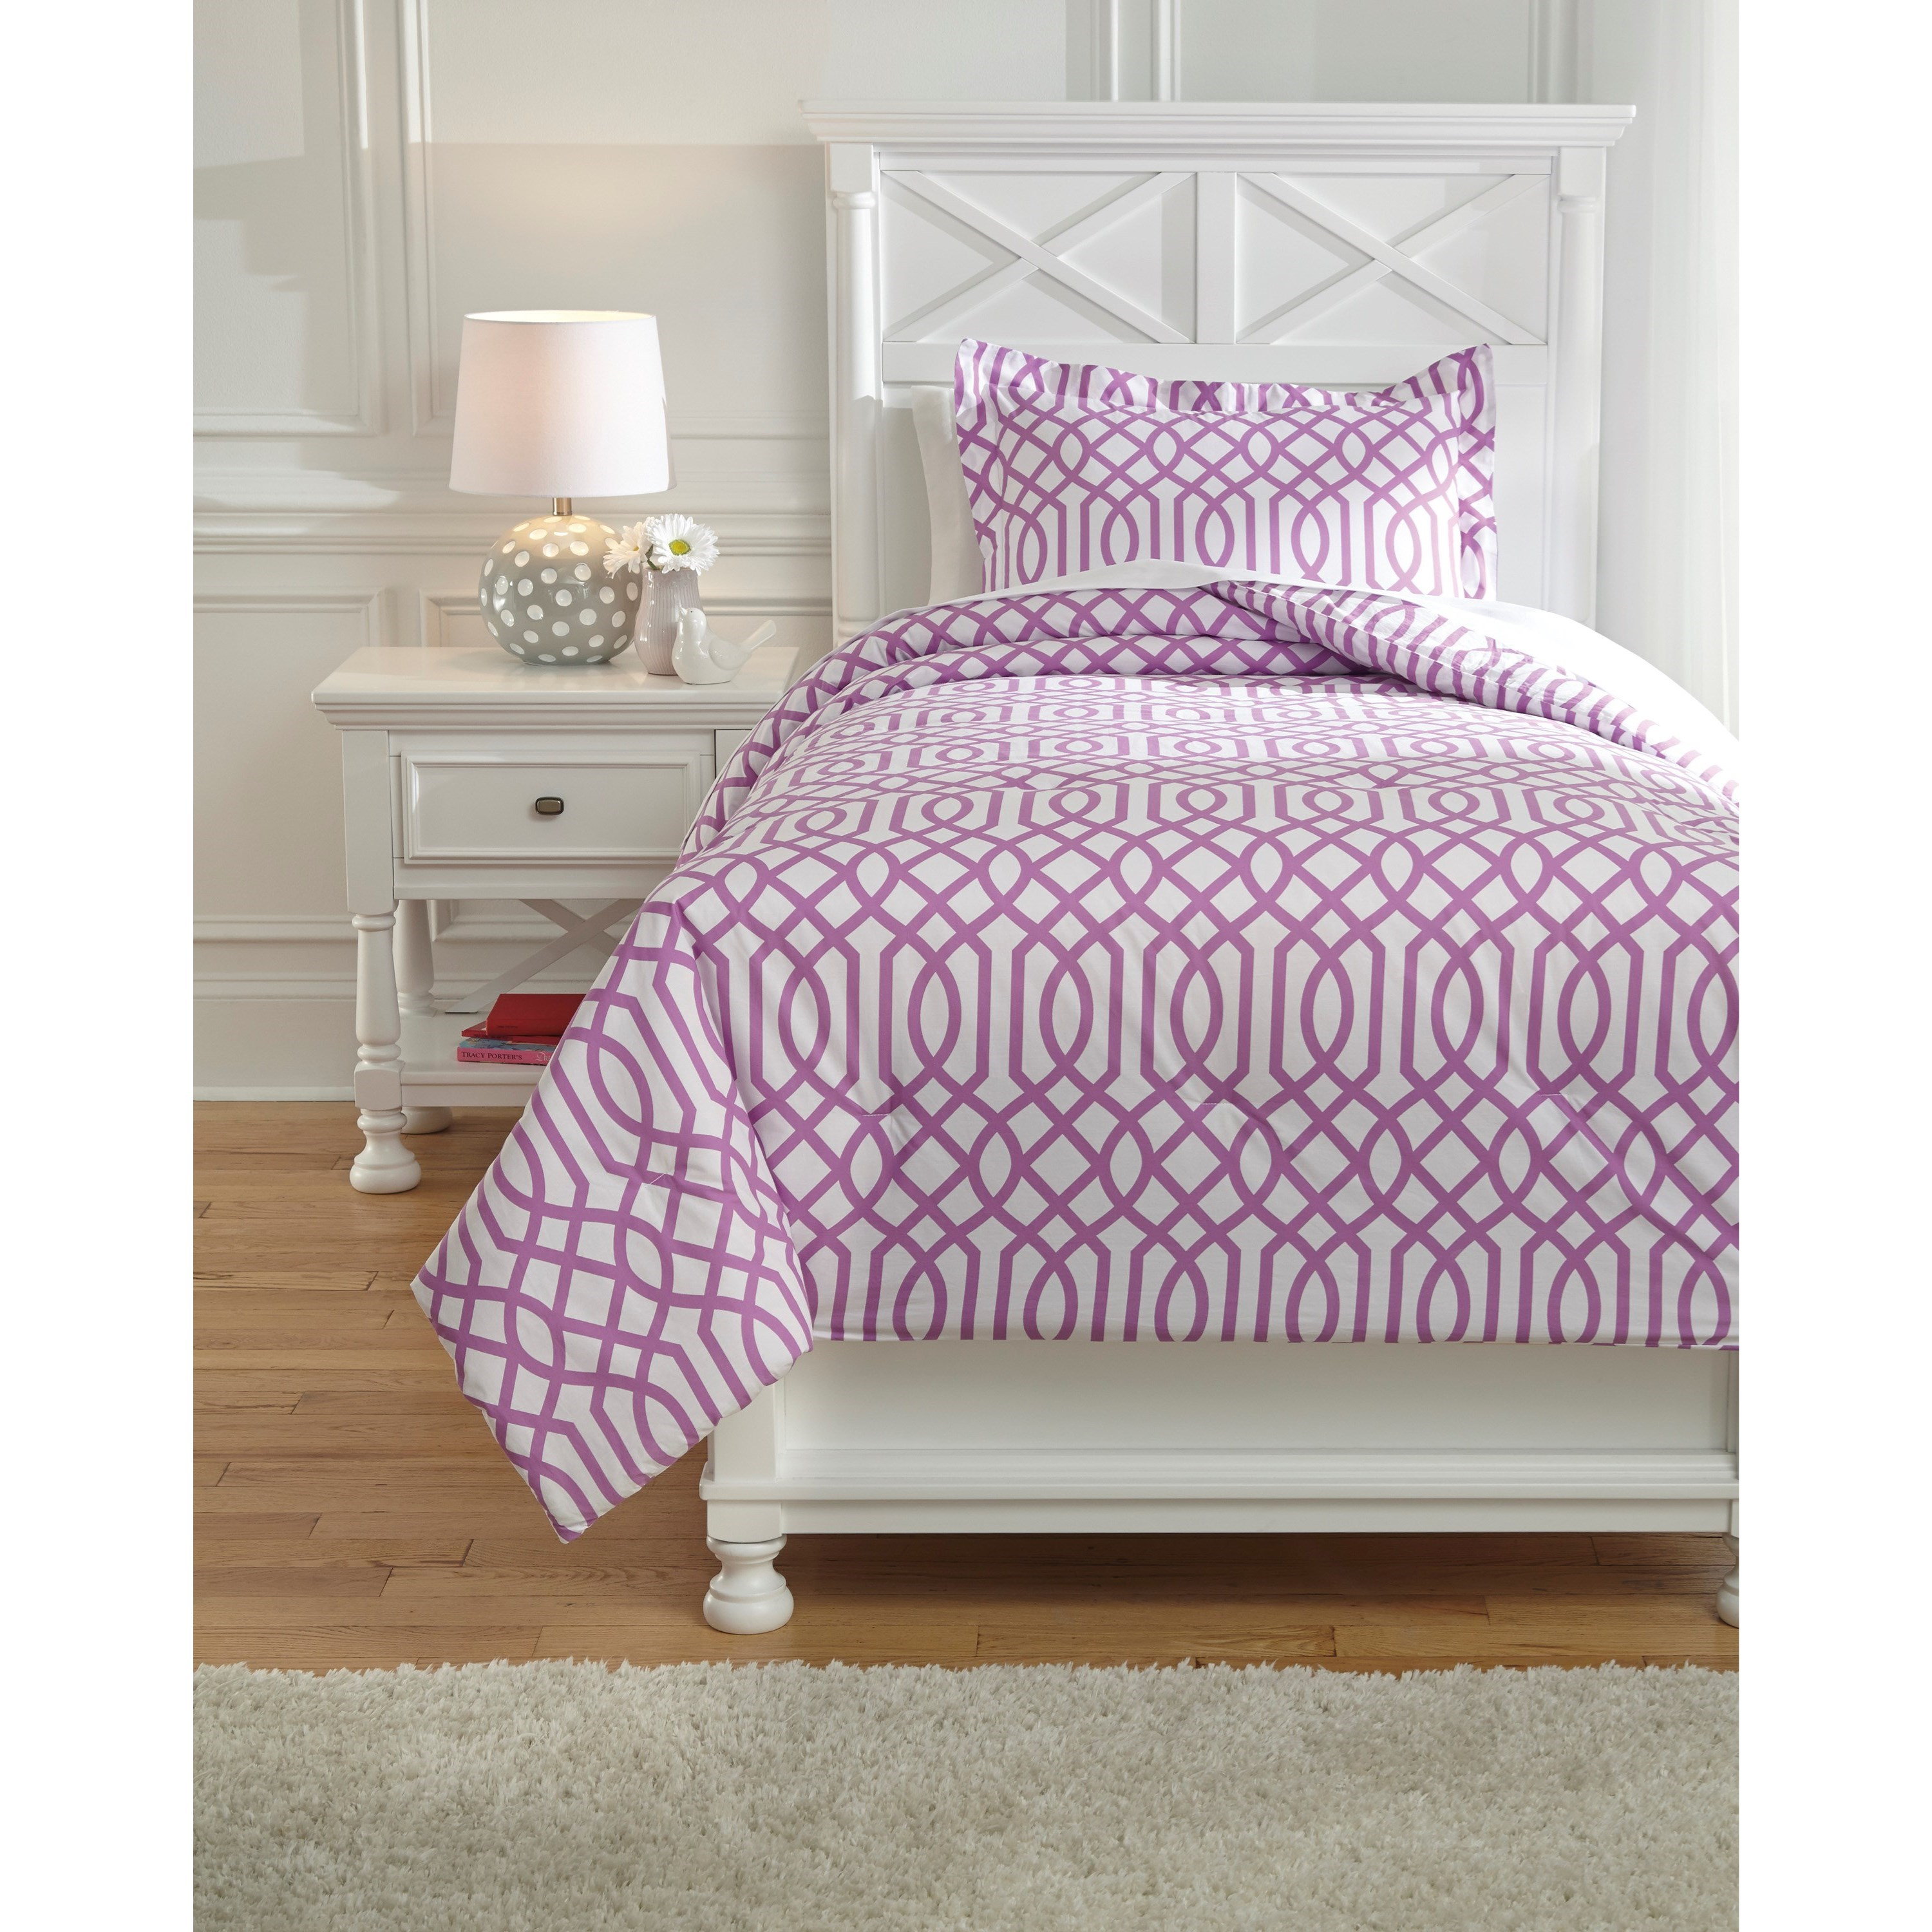 Bedding Sets Twin Loomis Lavender Comforter Set by Signature Design by Ashley at Zak's Warehouse Clearance Center